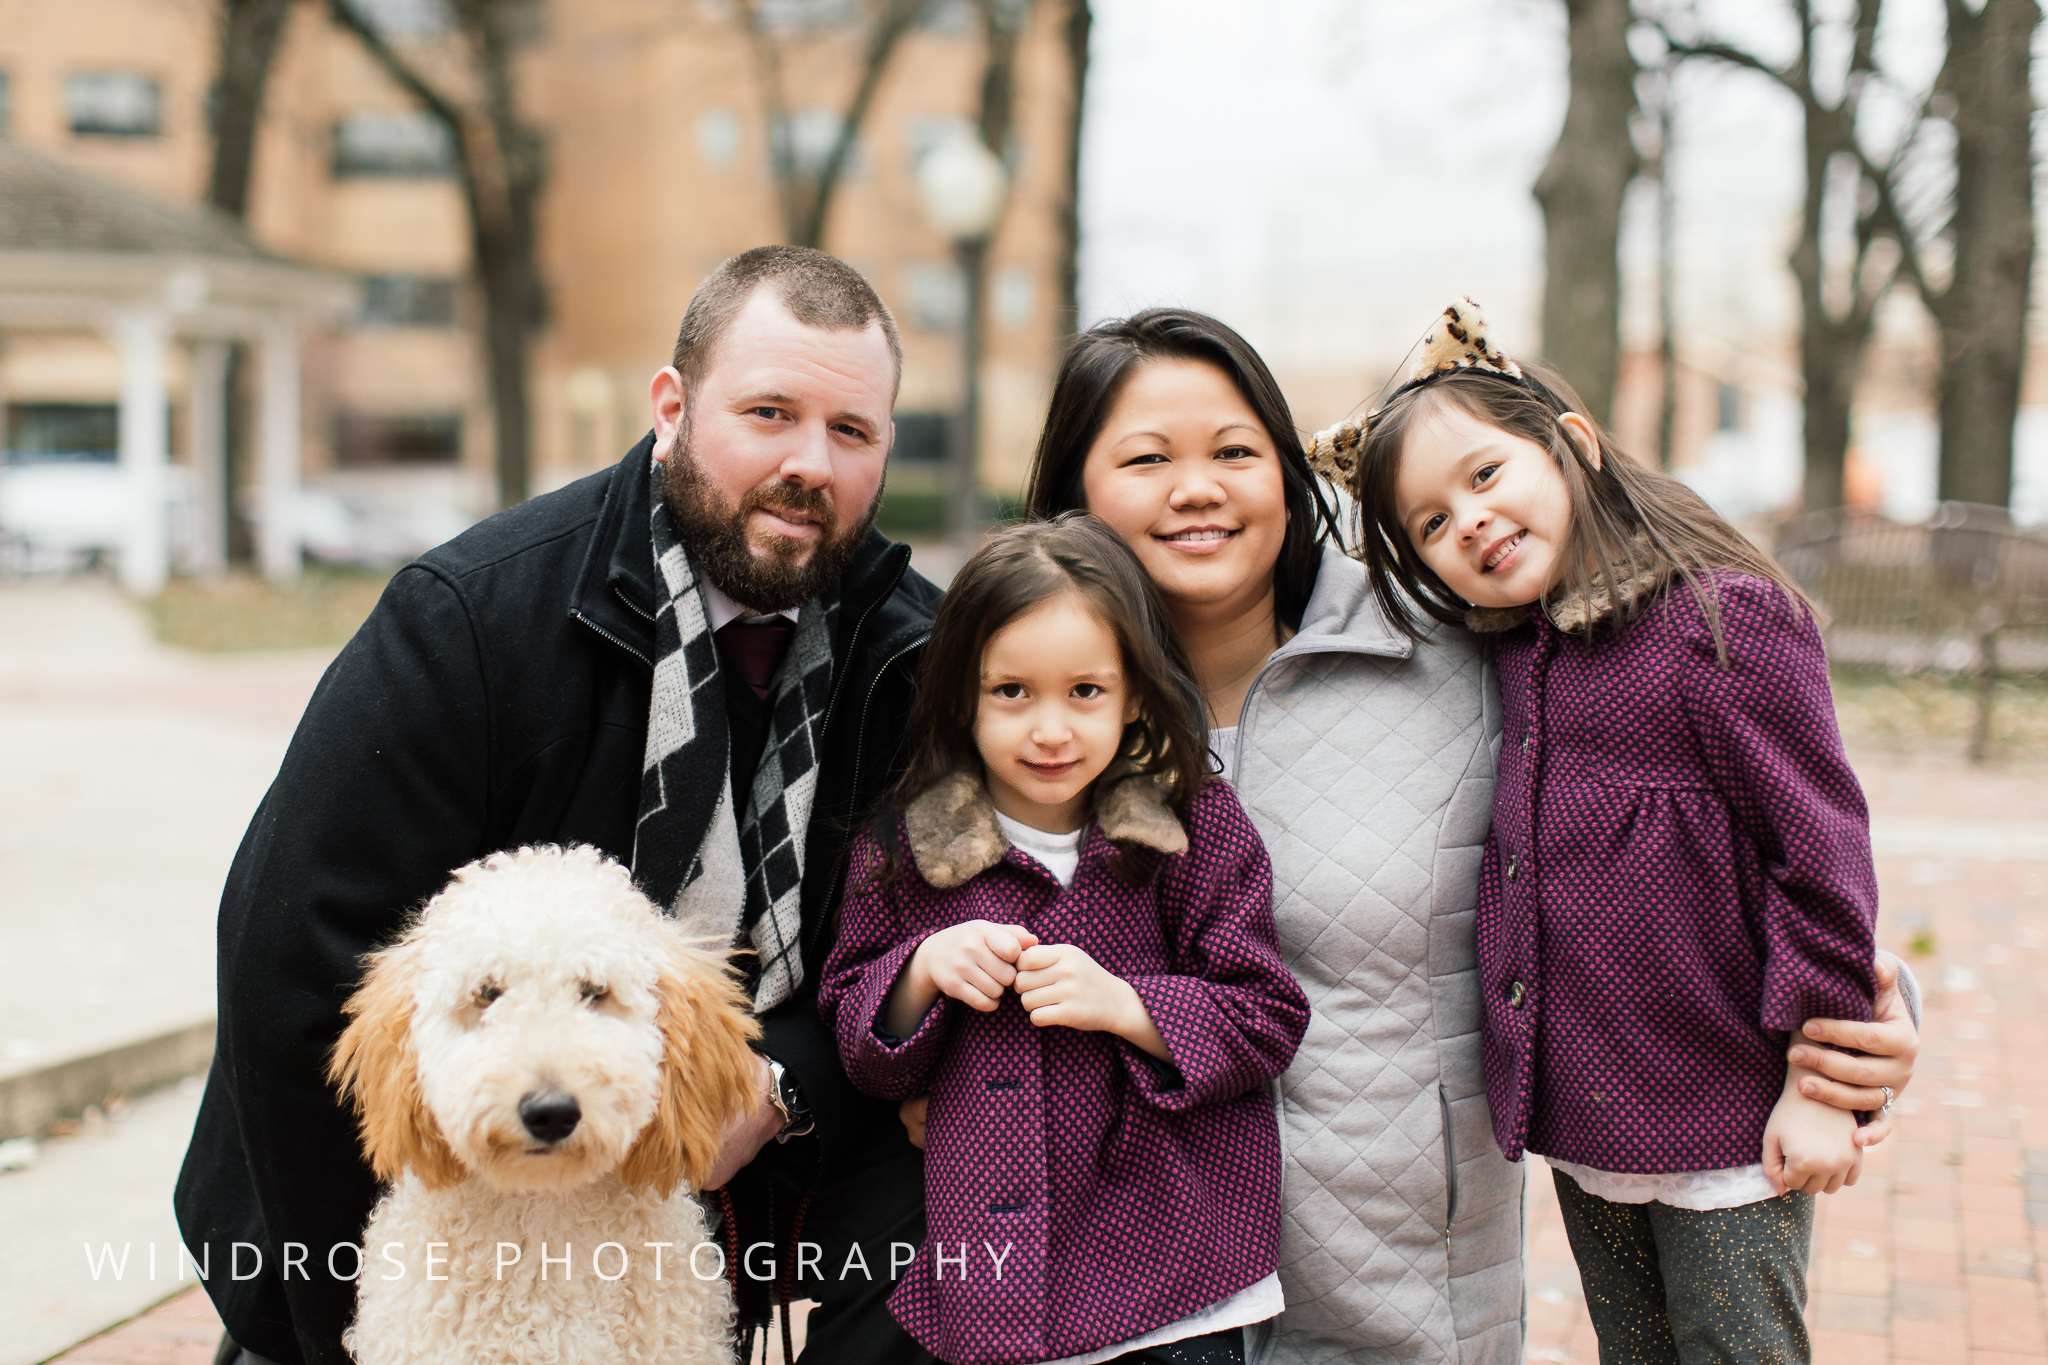 Central-Park-Skyway-Winter-Family-Session-Rochester-Minnesota-Portrait-Photography-3.jpg